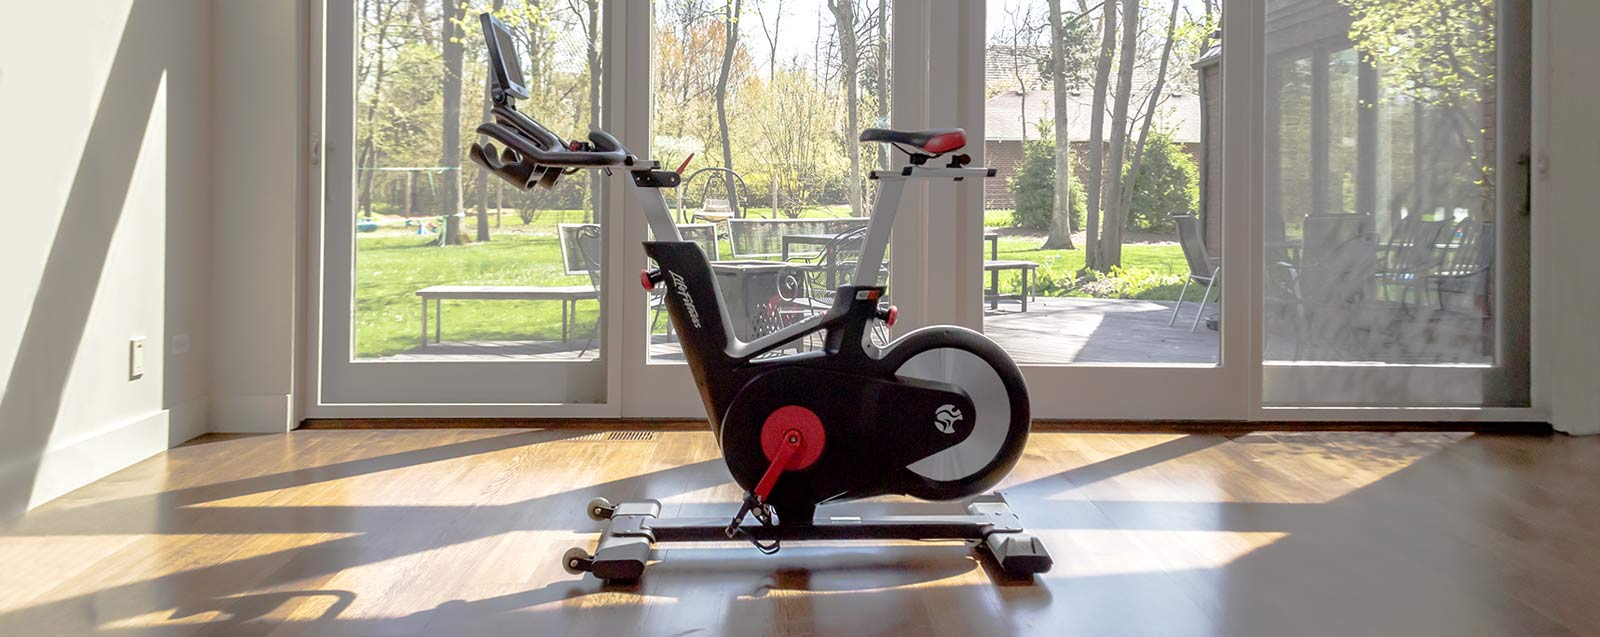 Peloton Spin Cycles available at Simpsons